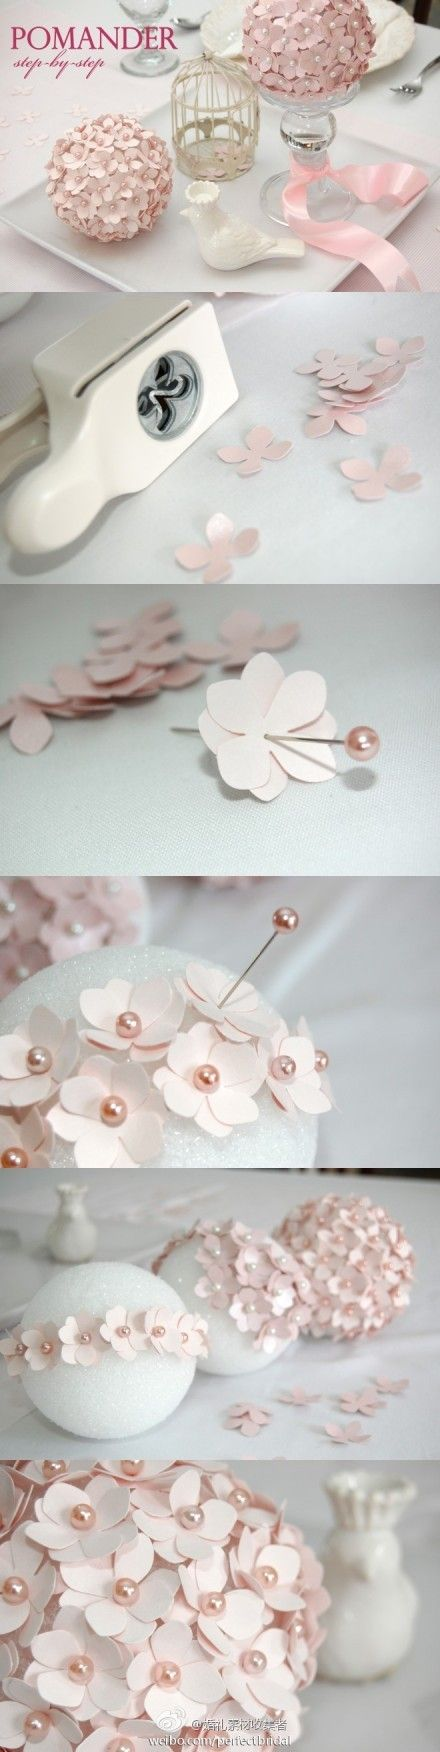 DIY flower balls: Flowers Ball, Ideas, Flower Ball, Paper Punch, Paper Flowers, Paperpunch, Centerpieces, Tables Decor, Center Pieces